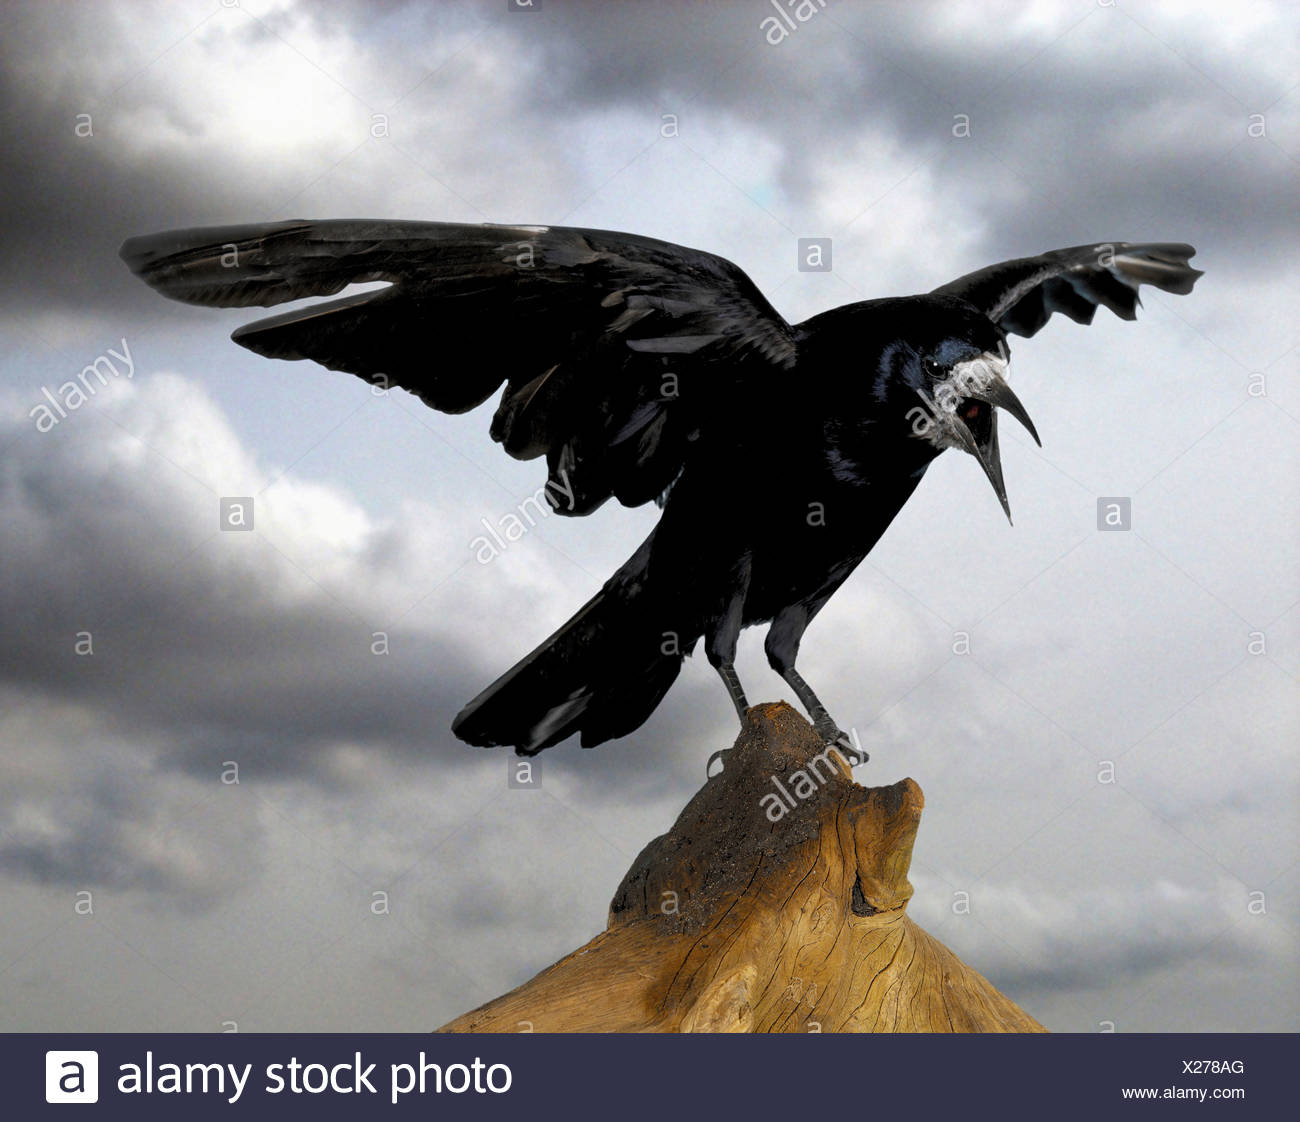 Rook landing on tree stump - Stock Image